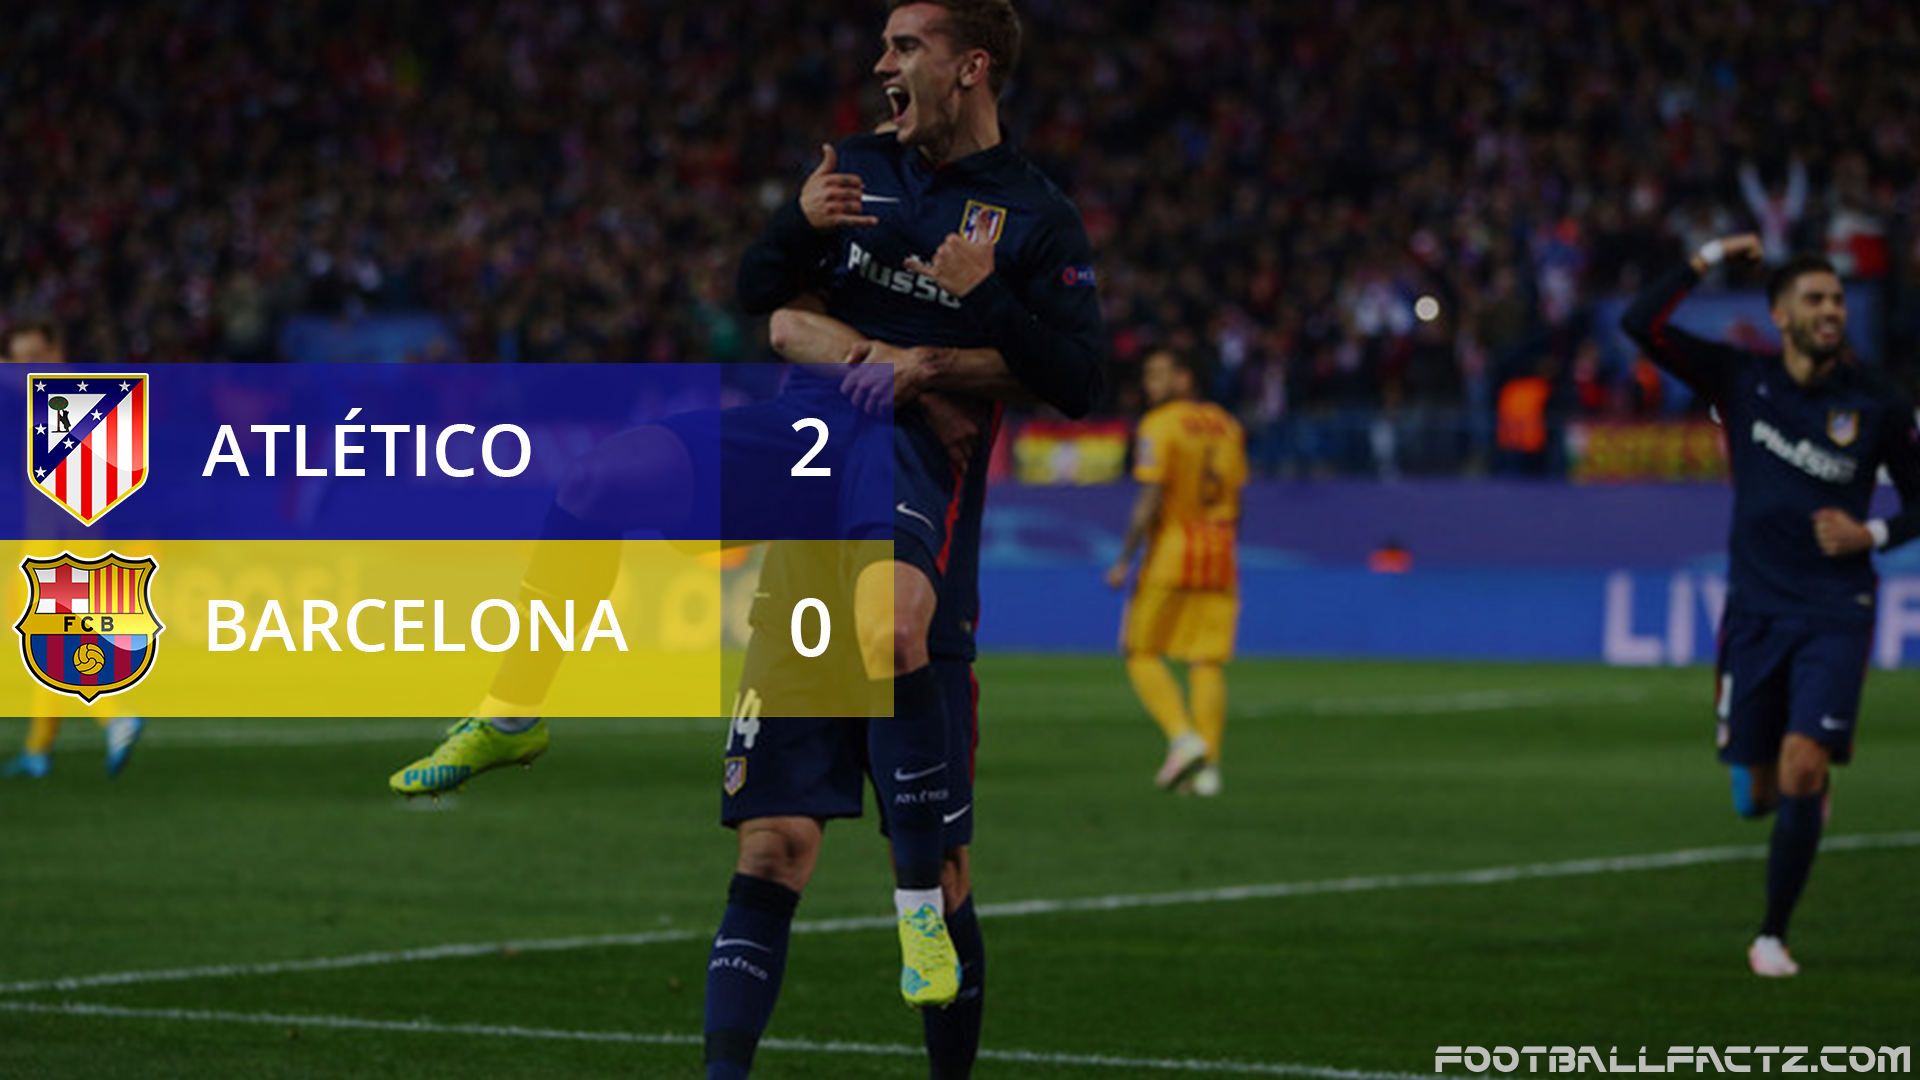 Atletico Madrid 2 - 0 Barcelona, Champions League